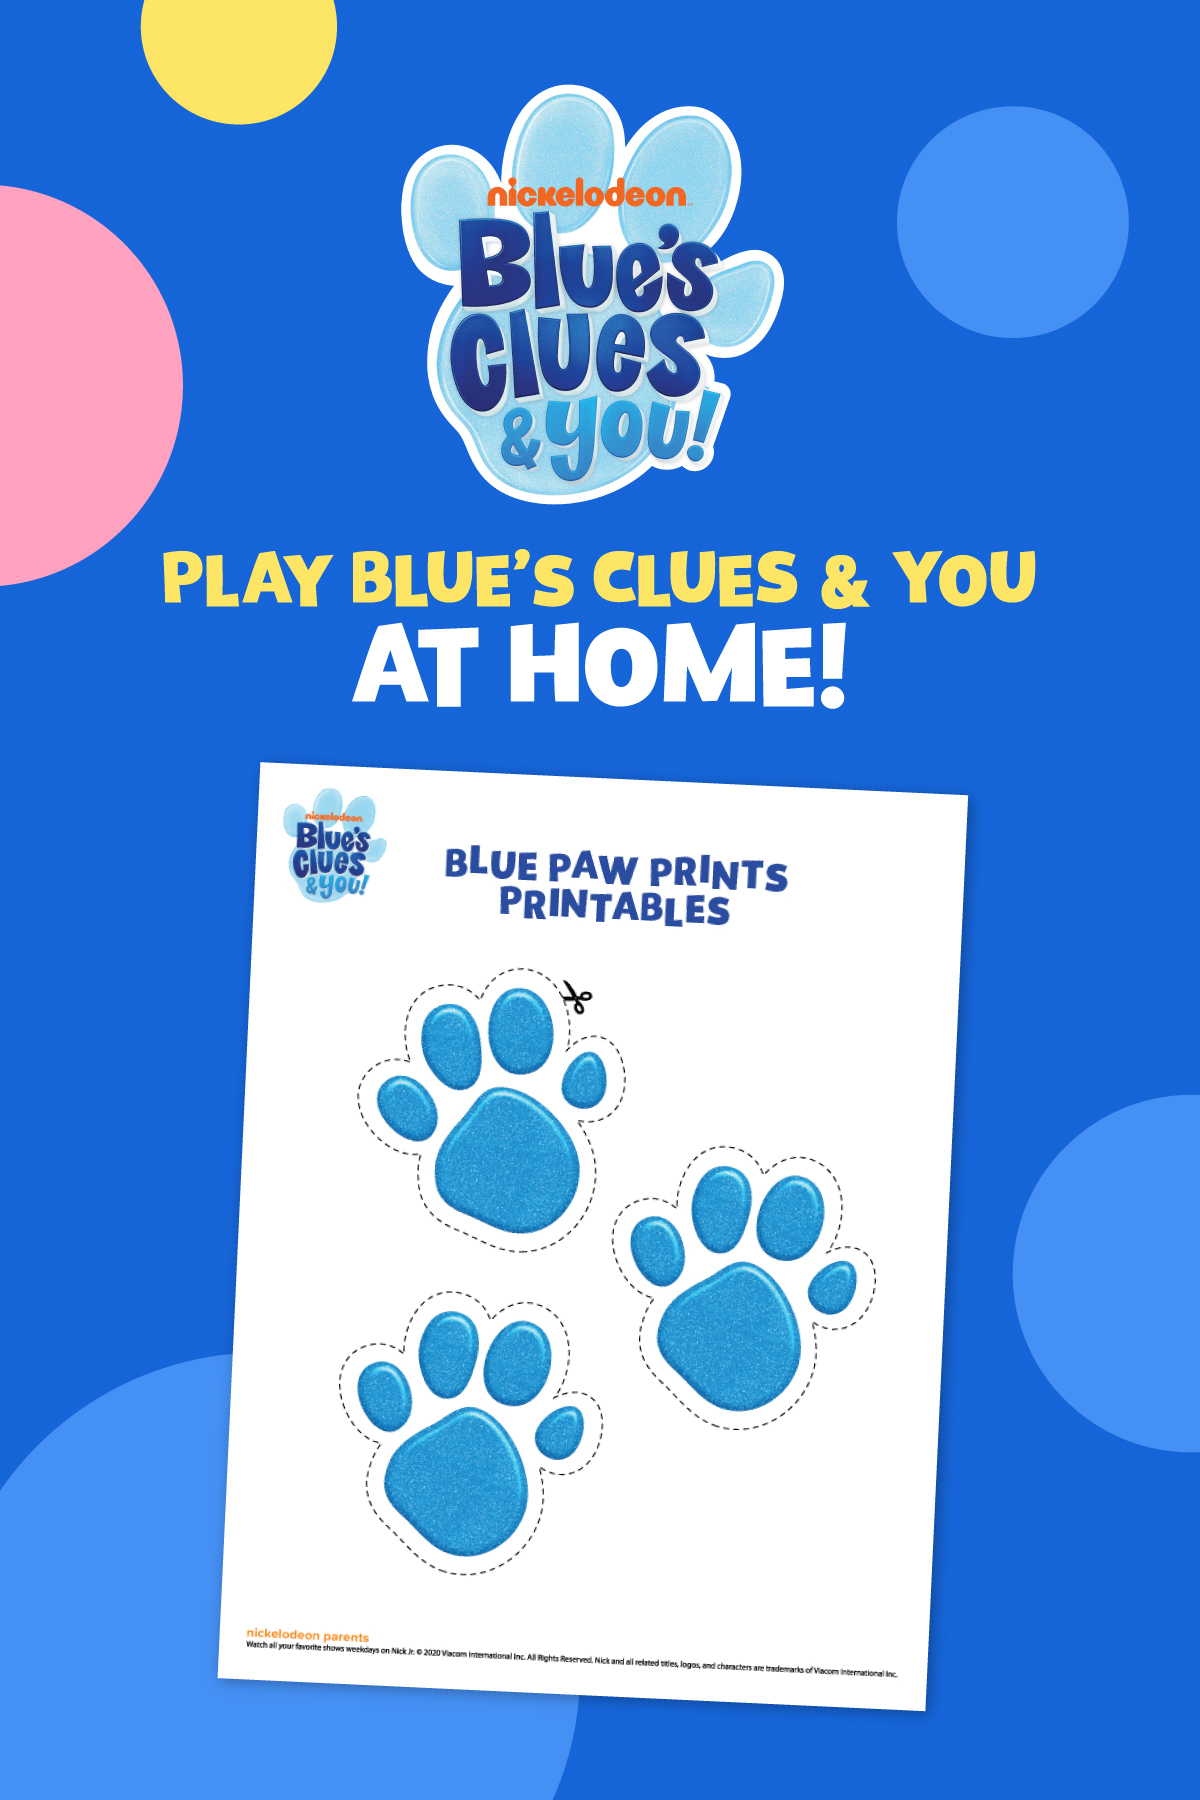 Play Blue S Clues At Home Nickelodeon Parents 628 x 472 jpeg 22 кб. nickelodeon parents